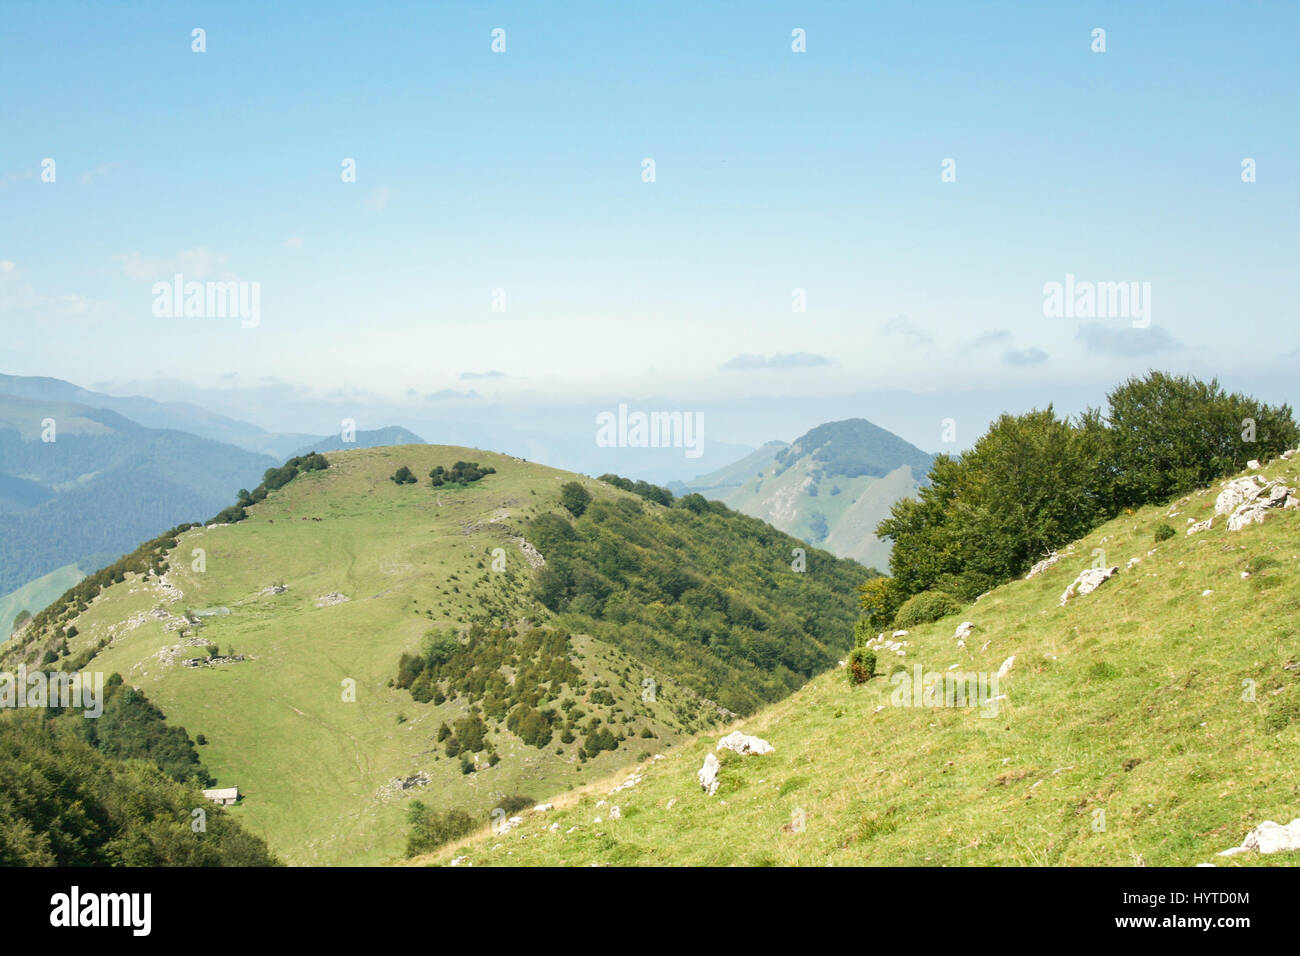 Aspin Pass (Col d Aspin) in summer. This pass is one of the iconic landmarks of the Pyrenees mountains in France Stock Photo